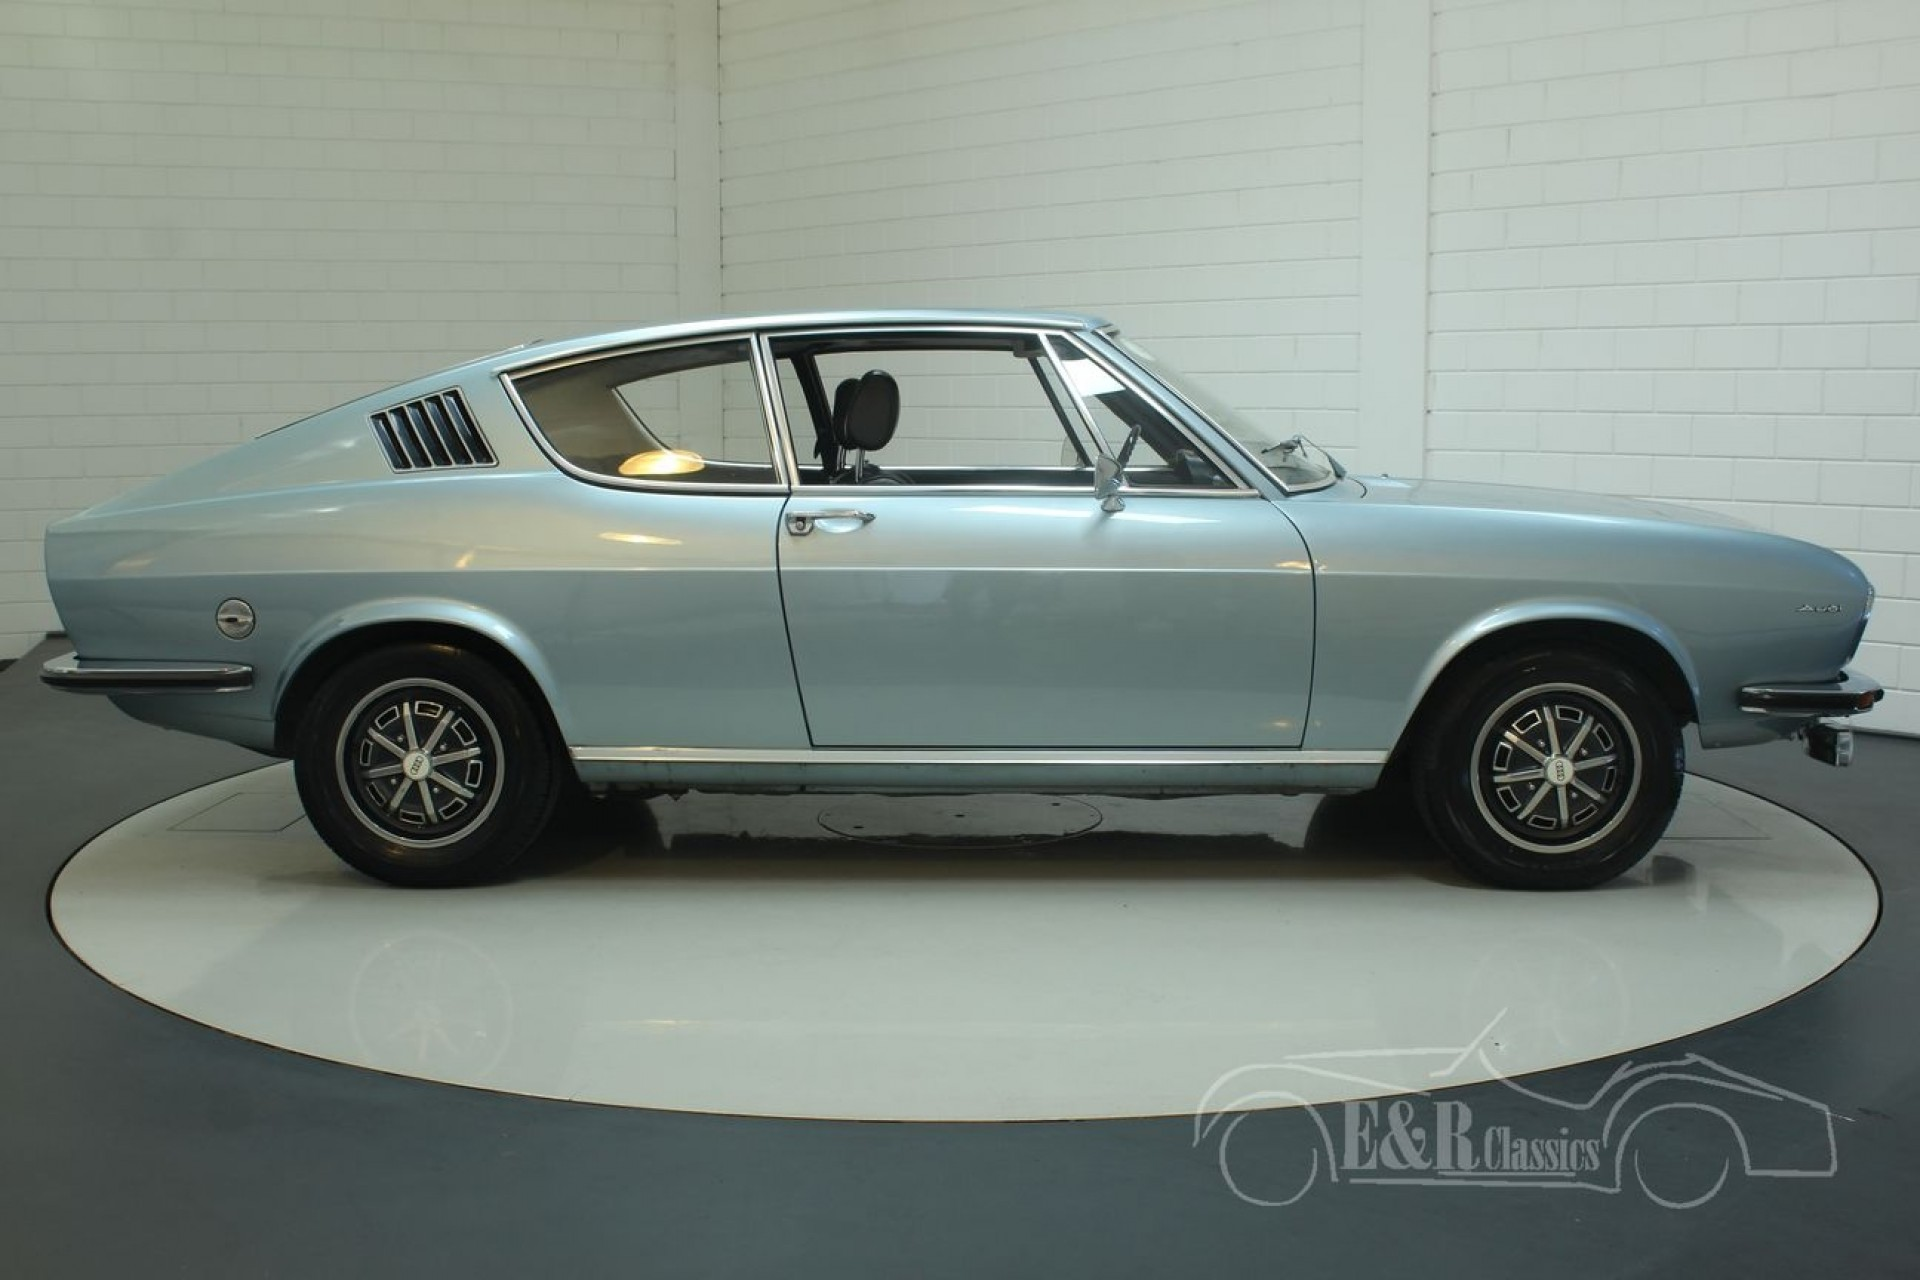 Audi 100 S Coupe 1972 for sale at Erclassics